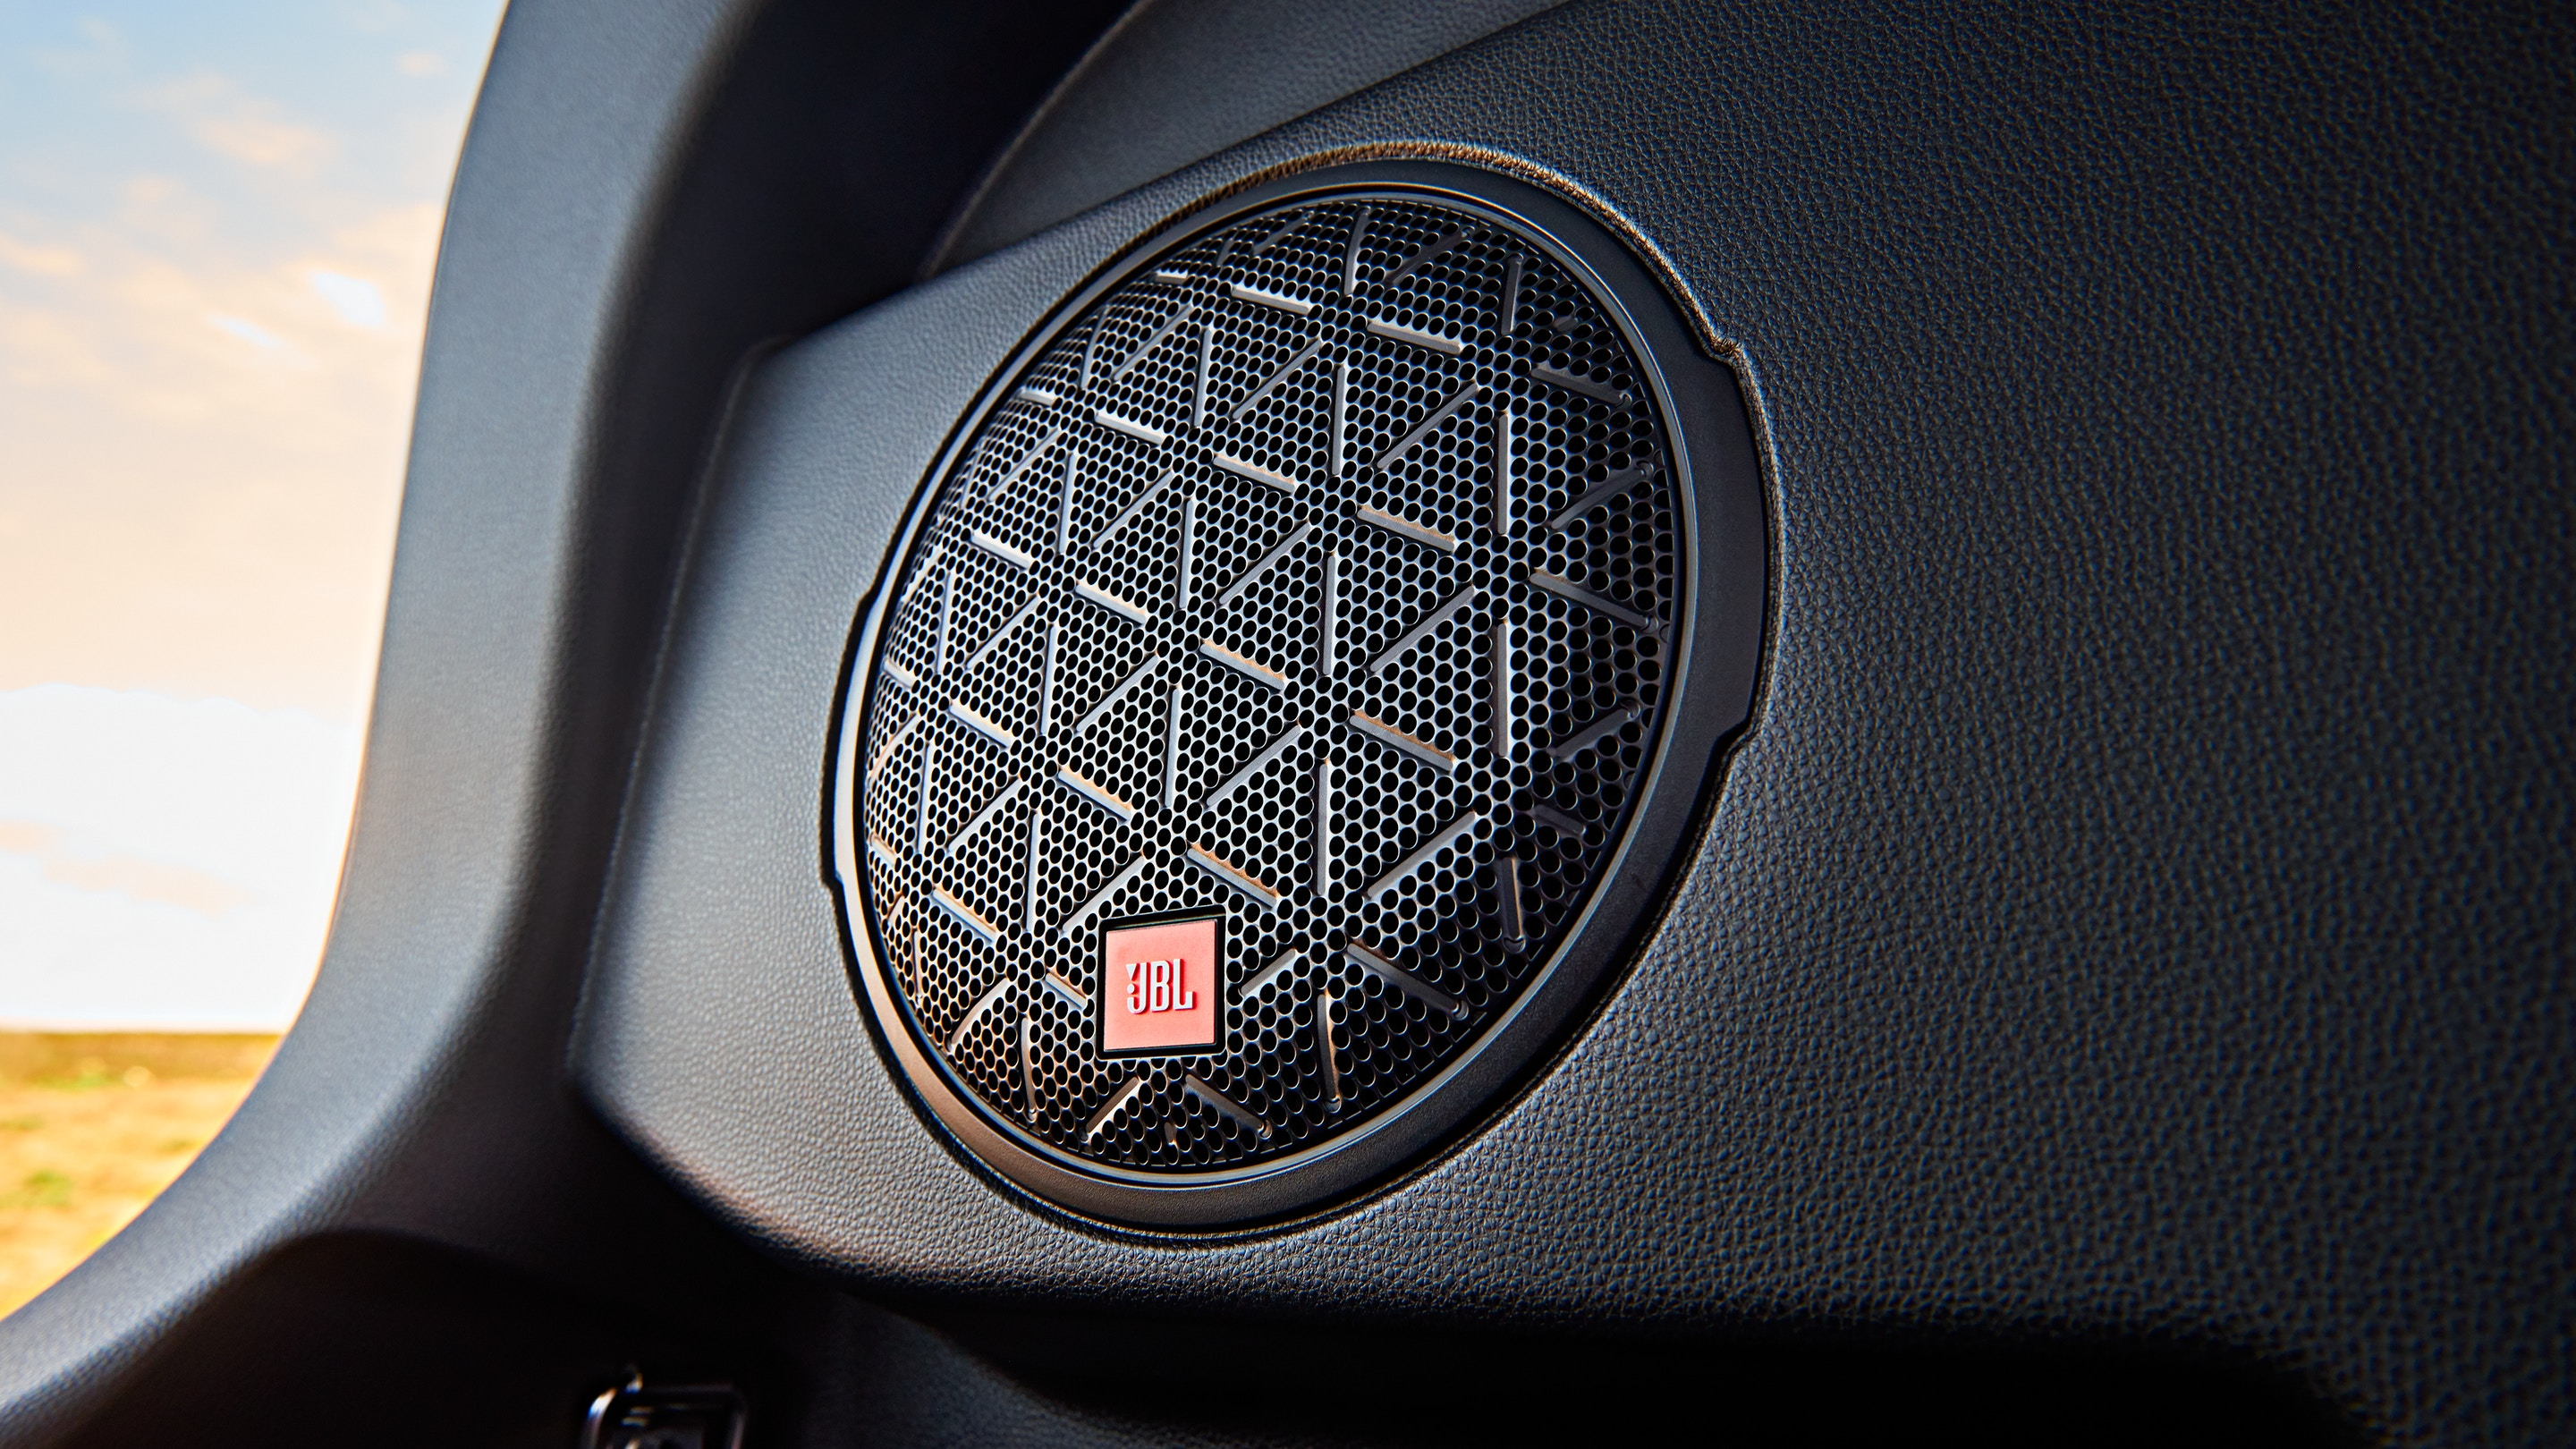 2019 RAV4 Speakers